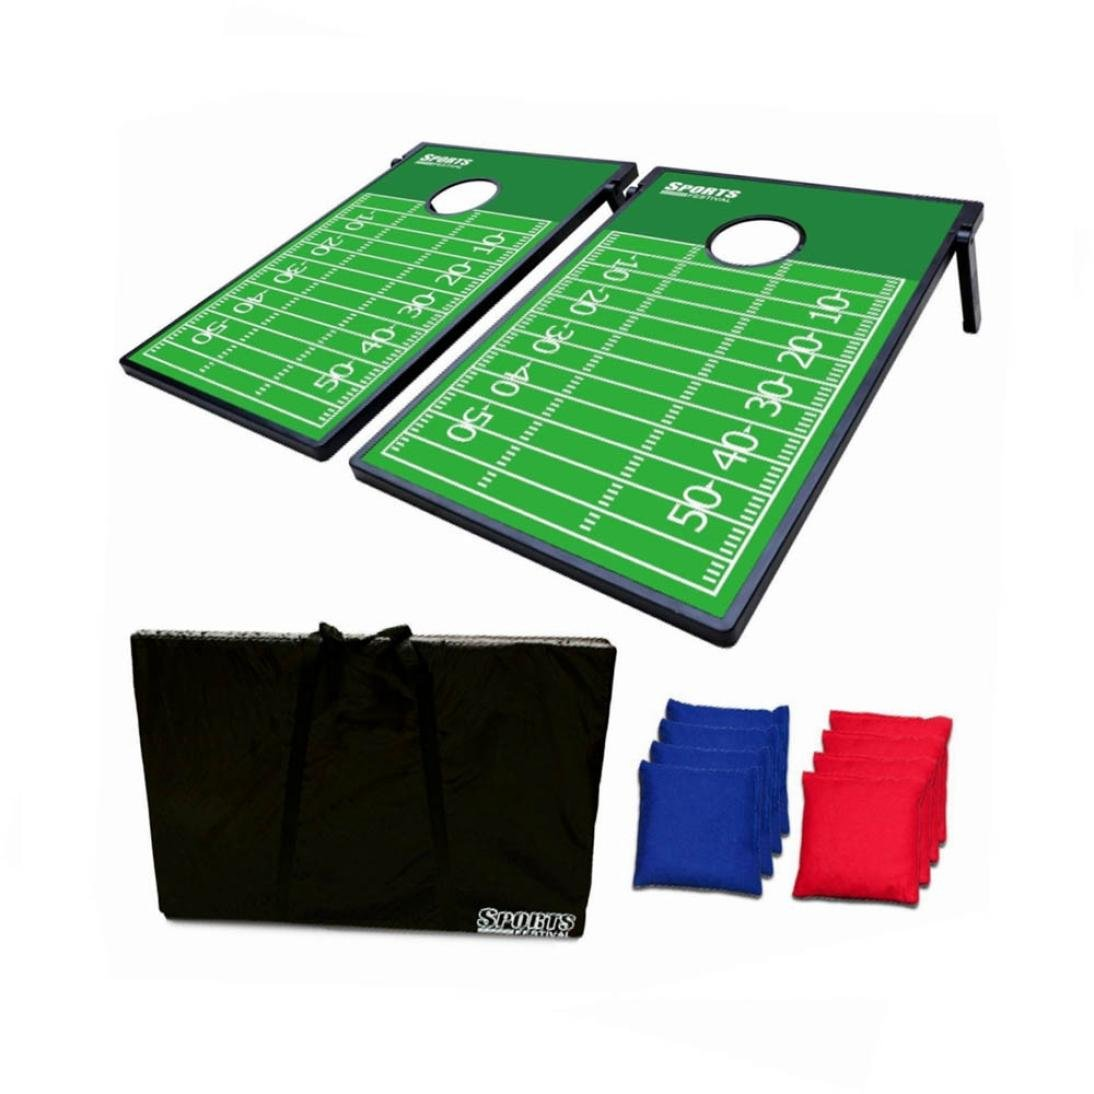 Hohaski Cornhole Game Set with 8 Bean Bags and Travel Carrying Case- Football Field Tic Tac Toe 2 Games In 1 by Hohaski